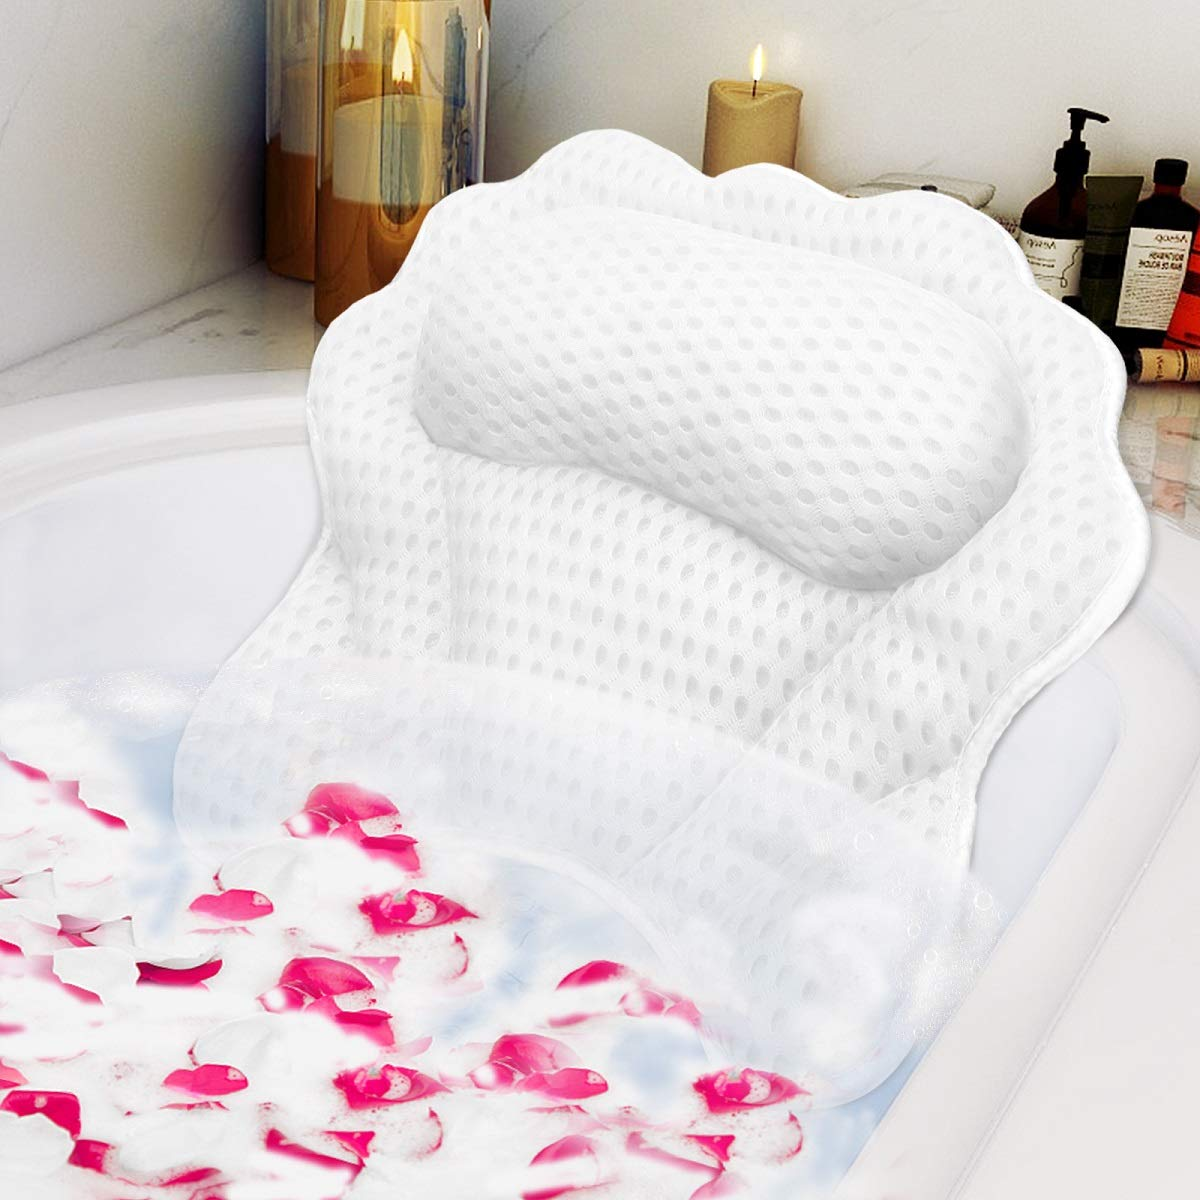 Bath Pillow RUVINCE Ergonomic Luxury bathtub pillow with head,Neck, Shoulder and back support, 4D bath pillows for tub with 6 Powerful Suction Cups, Fits all Bathtub, Spa Tub, Hot Jacuzzi